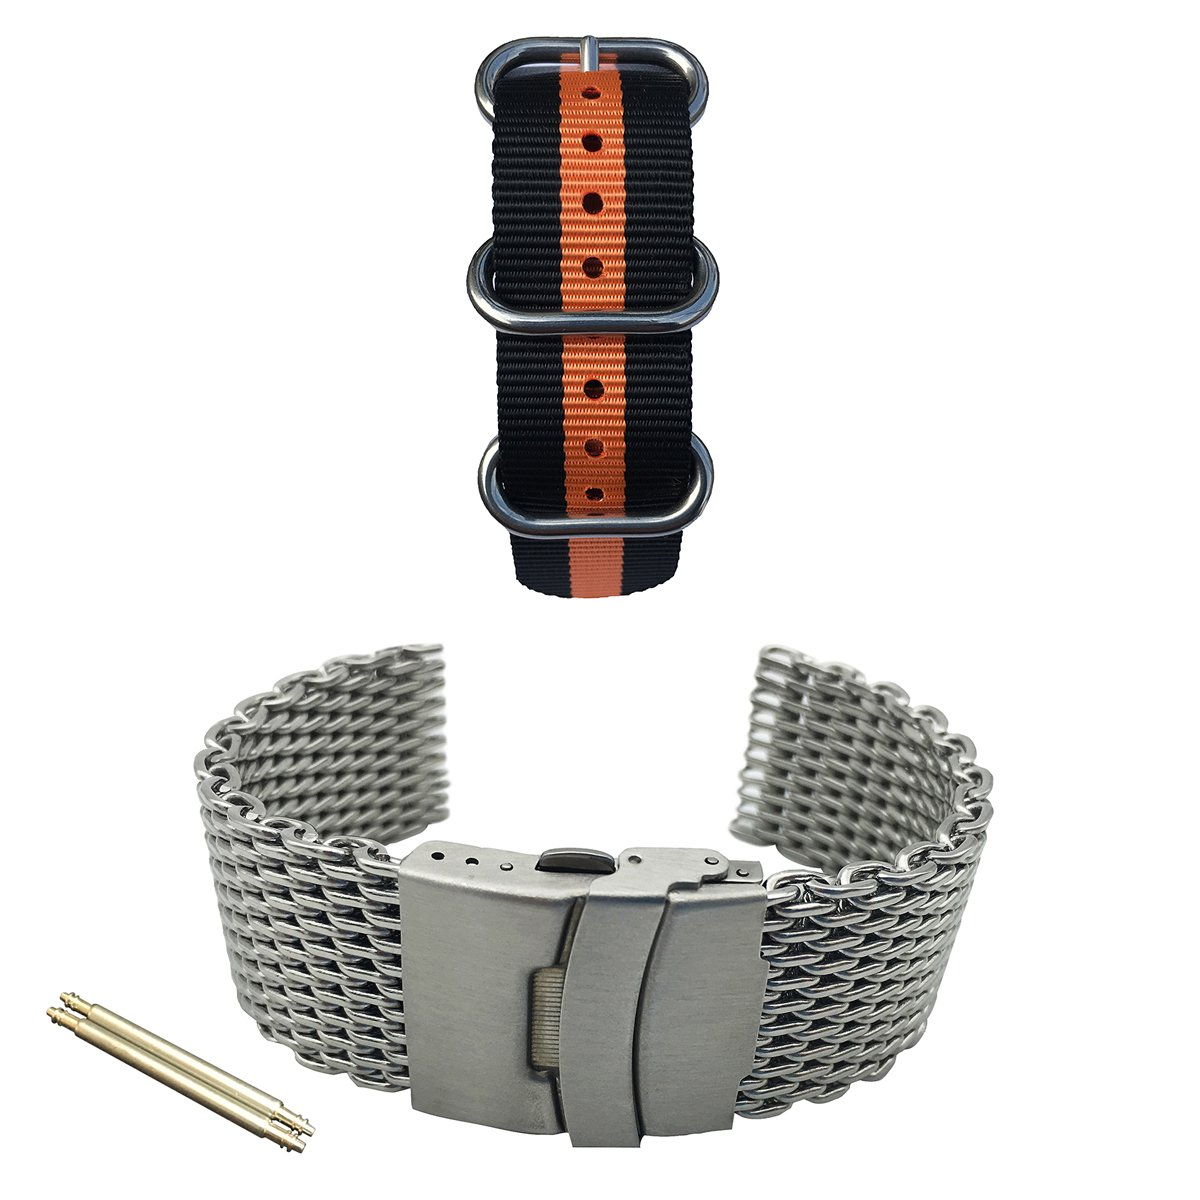 LEESTING Watch Band 2 Pack with Shark Mesh Bracelet Silver and Nylon Strap 20mm 22mm 24mm for Mechanical Quartz Diver Watch (20mm)